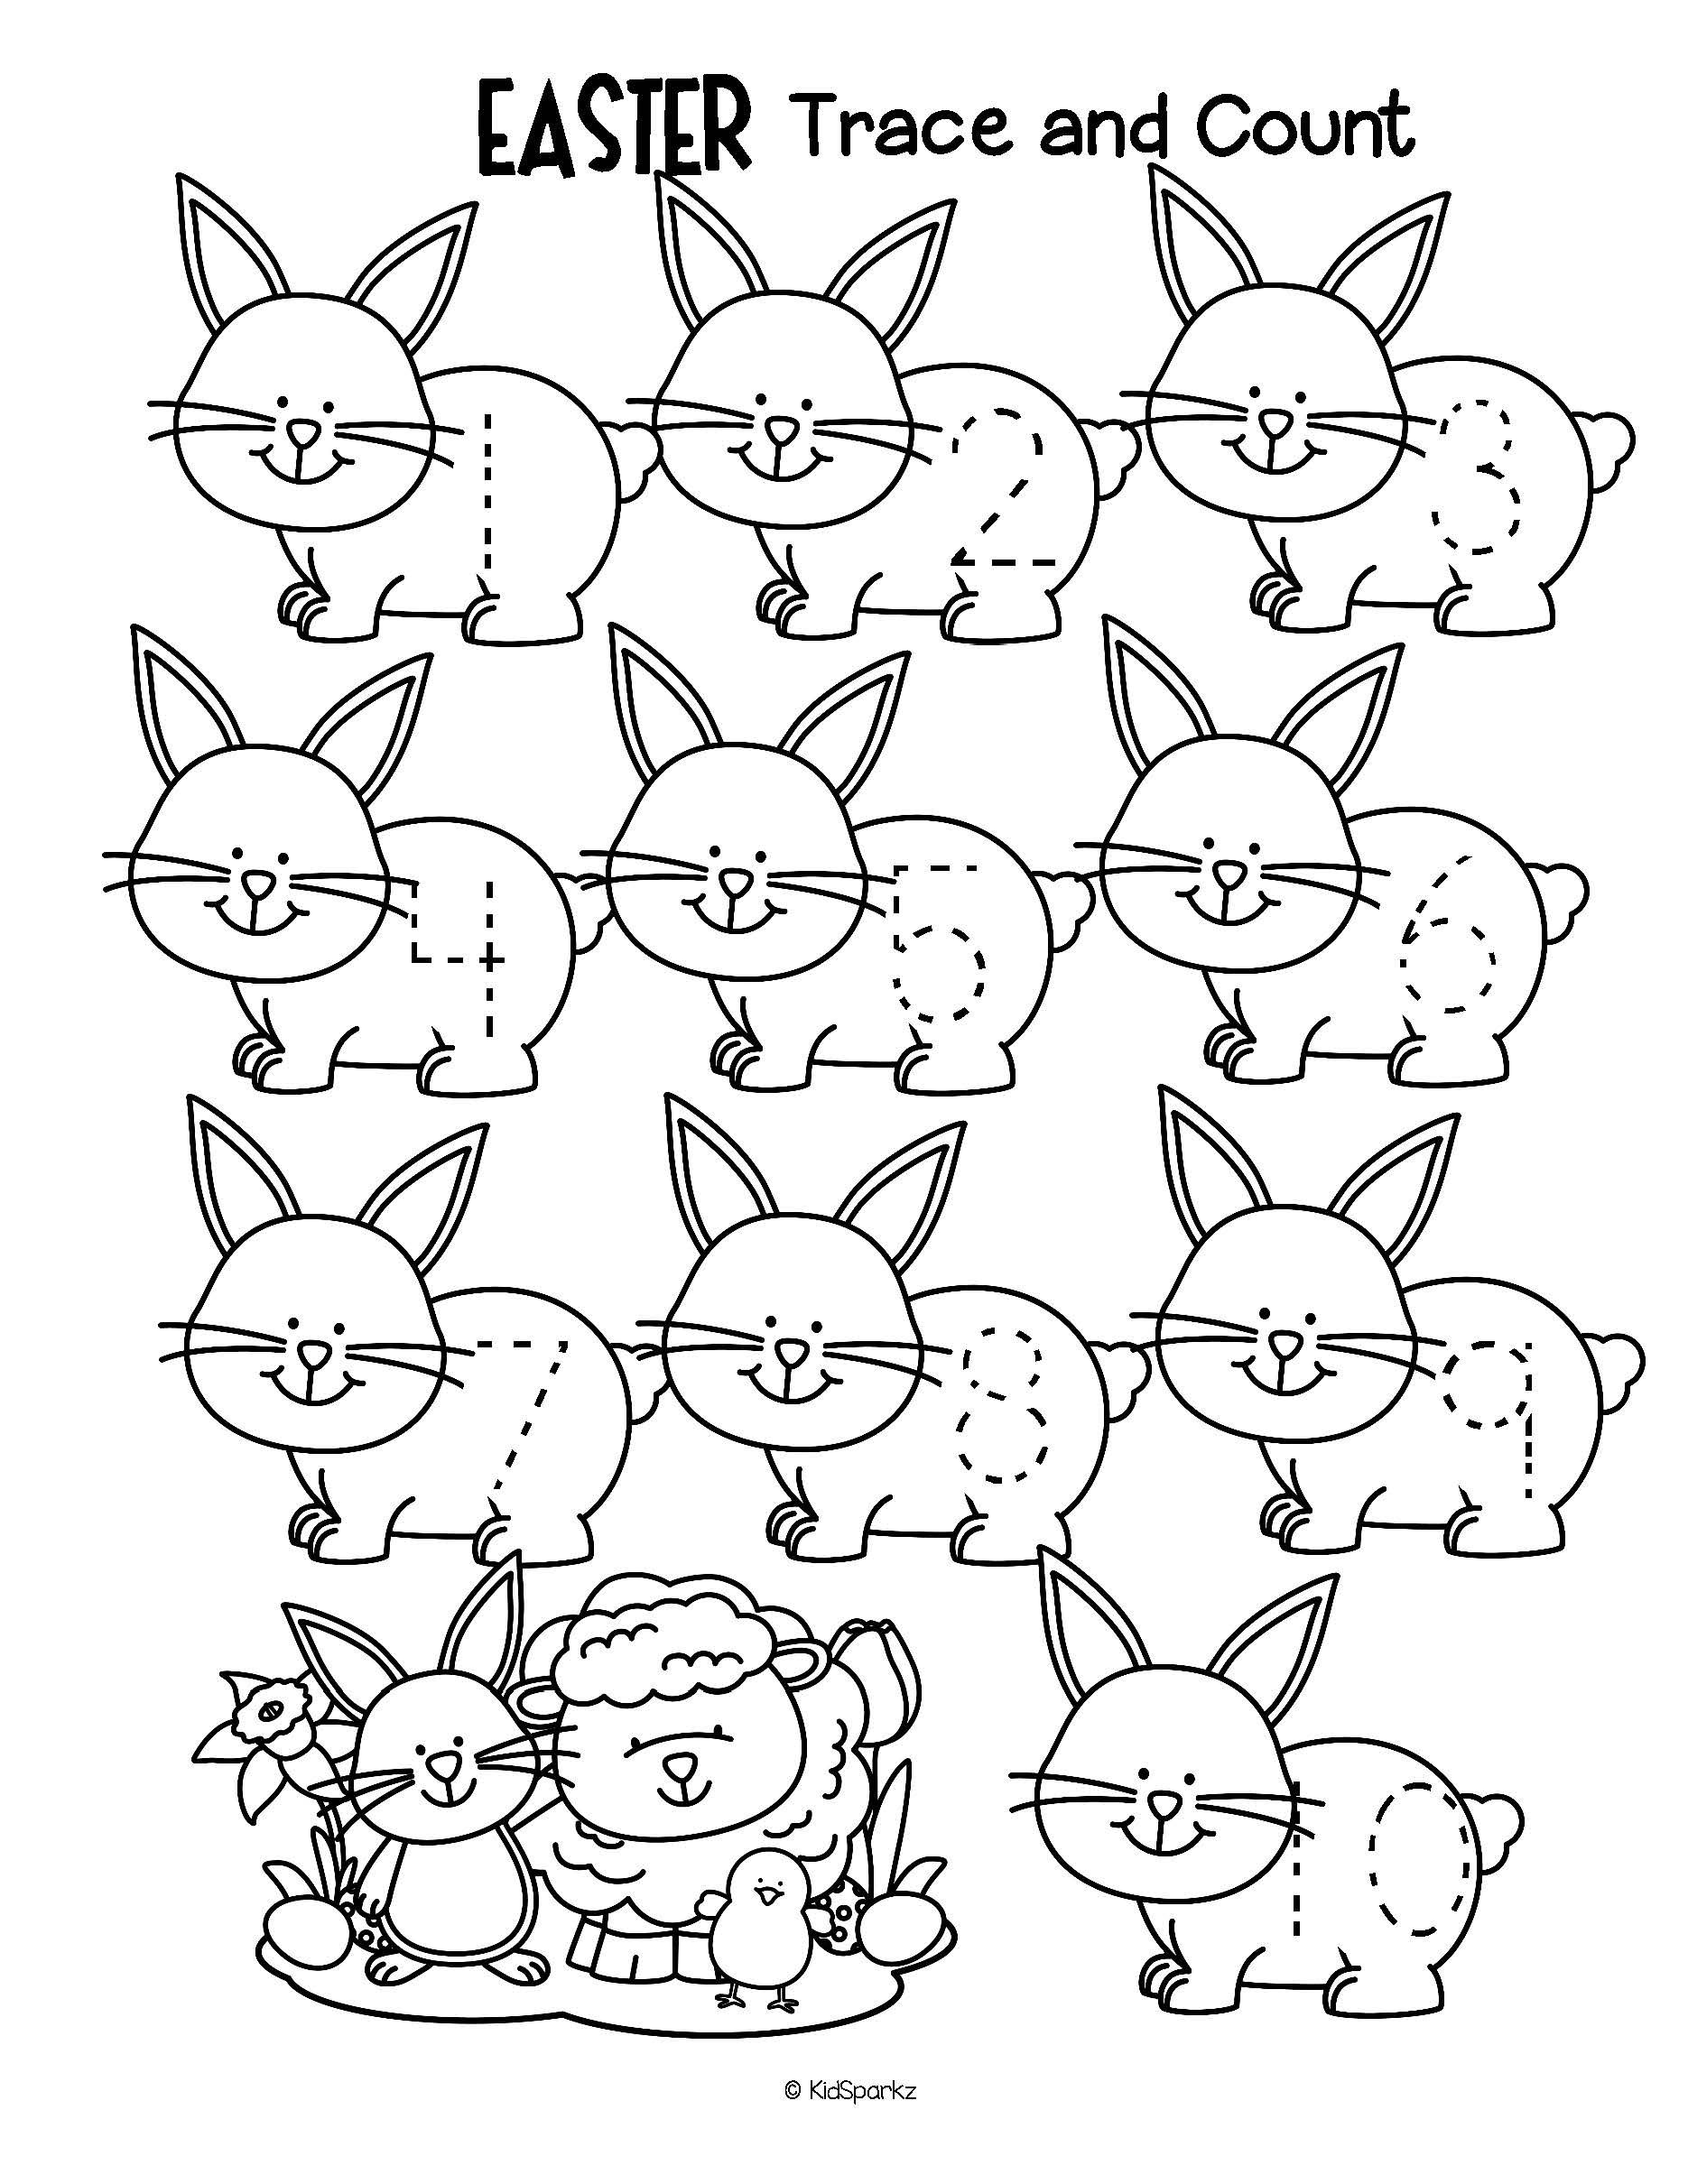 Free Three Easter Themed Tracing And Counting Pages For Early Learners Count The Sets Recognize And Tra Easter Preschool Easter Math Preschool Free Preschool [ 2420 x 1870 Pixel ]